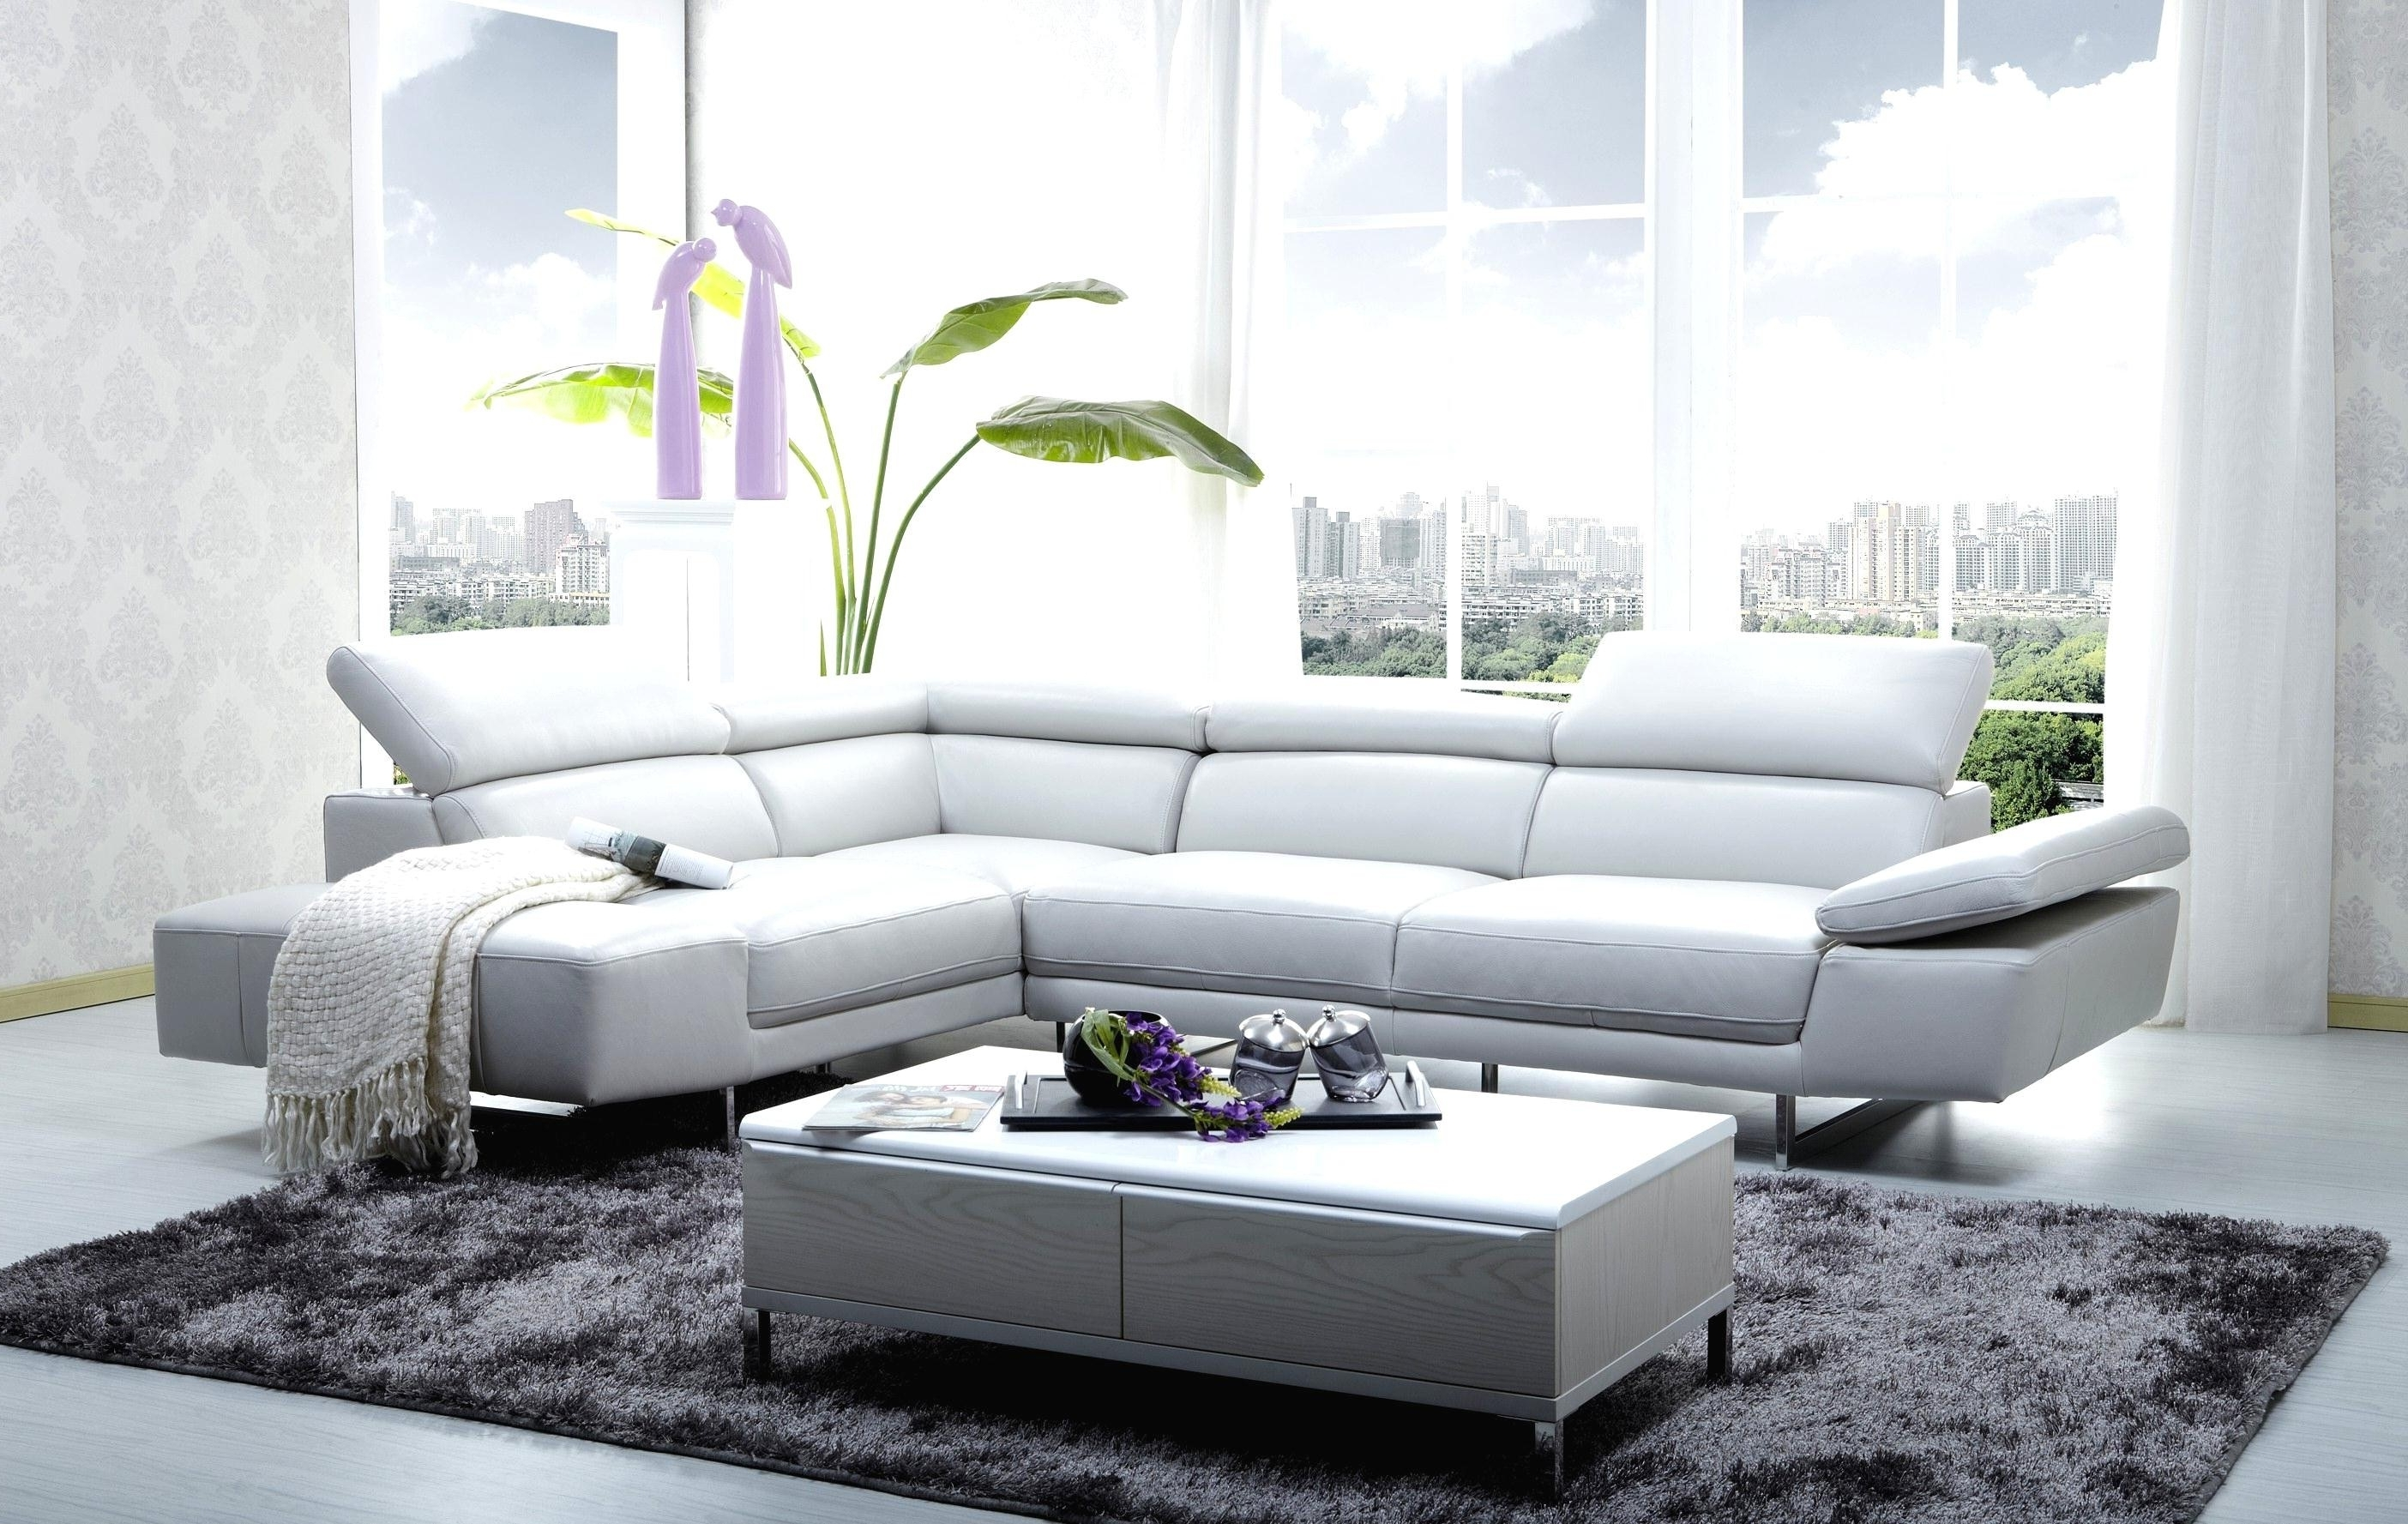 High Quality Leather Sectional Sofas – Fjellkjeden For Best And Newest Quality Sectional Sofas (View 15 of 15)